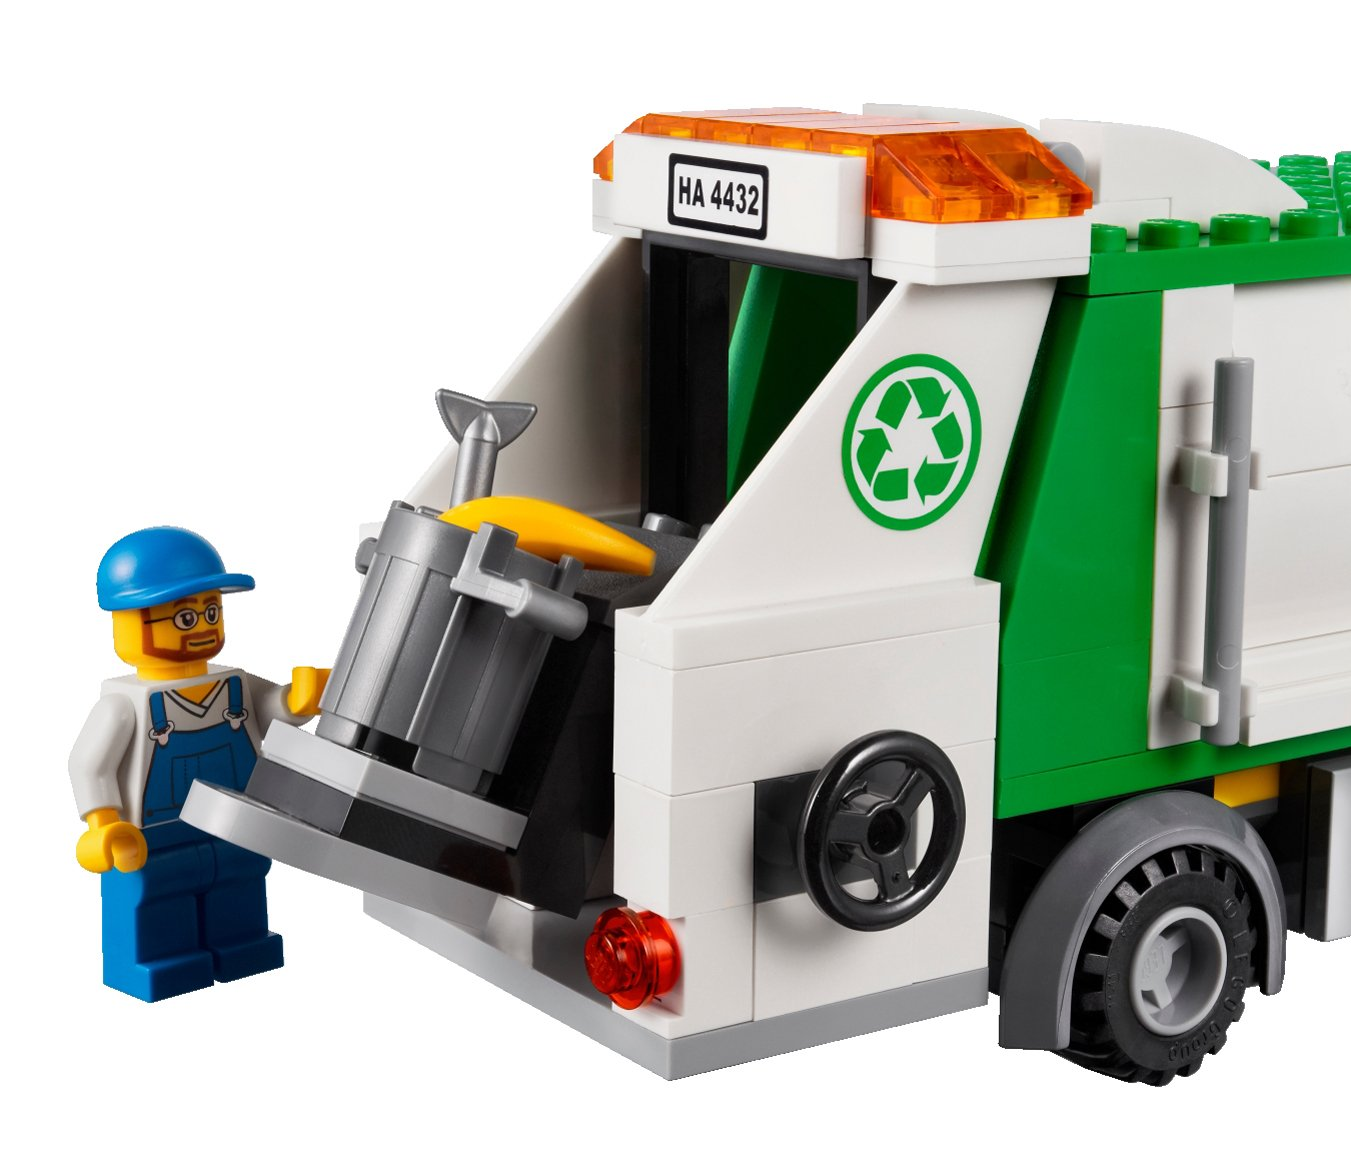 lego city 4432 garbage truck amazoncouk toys games - Camion Lego